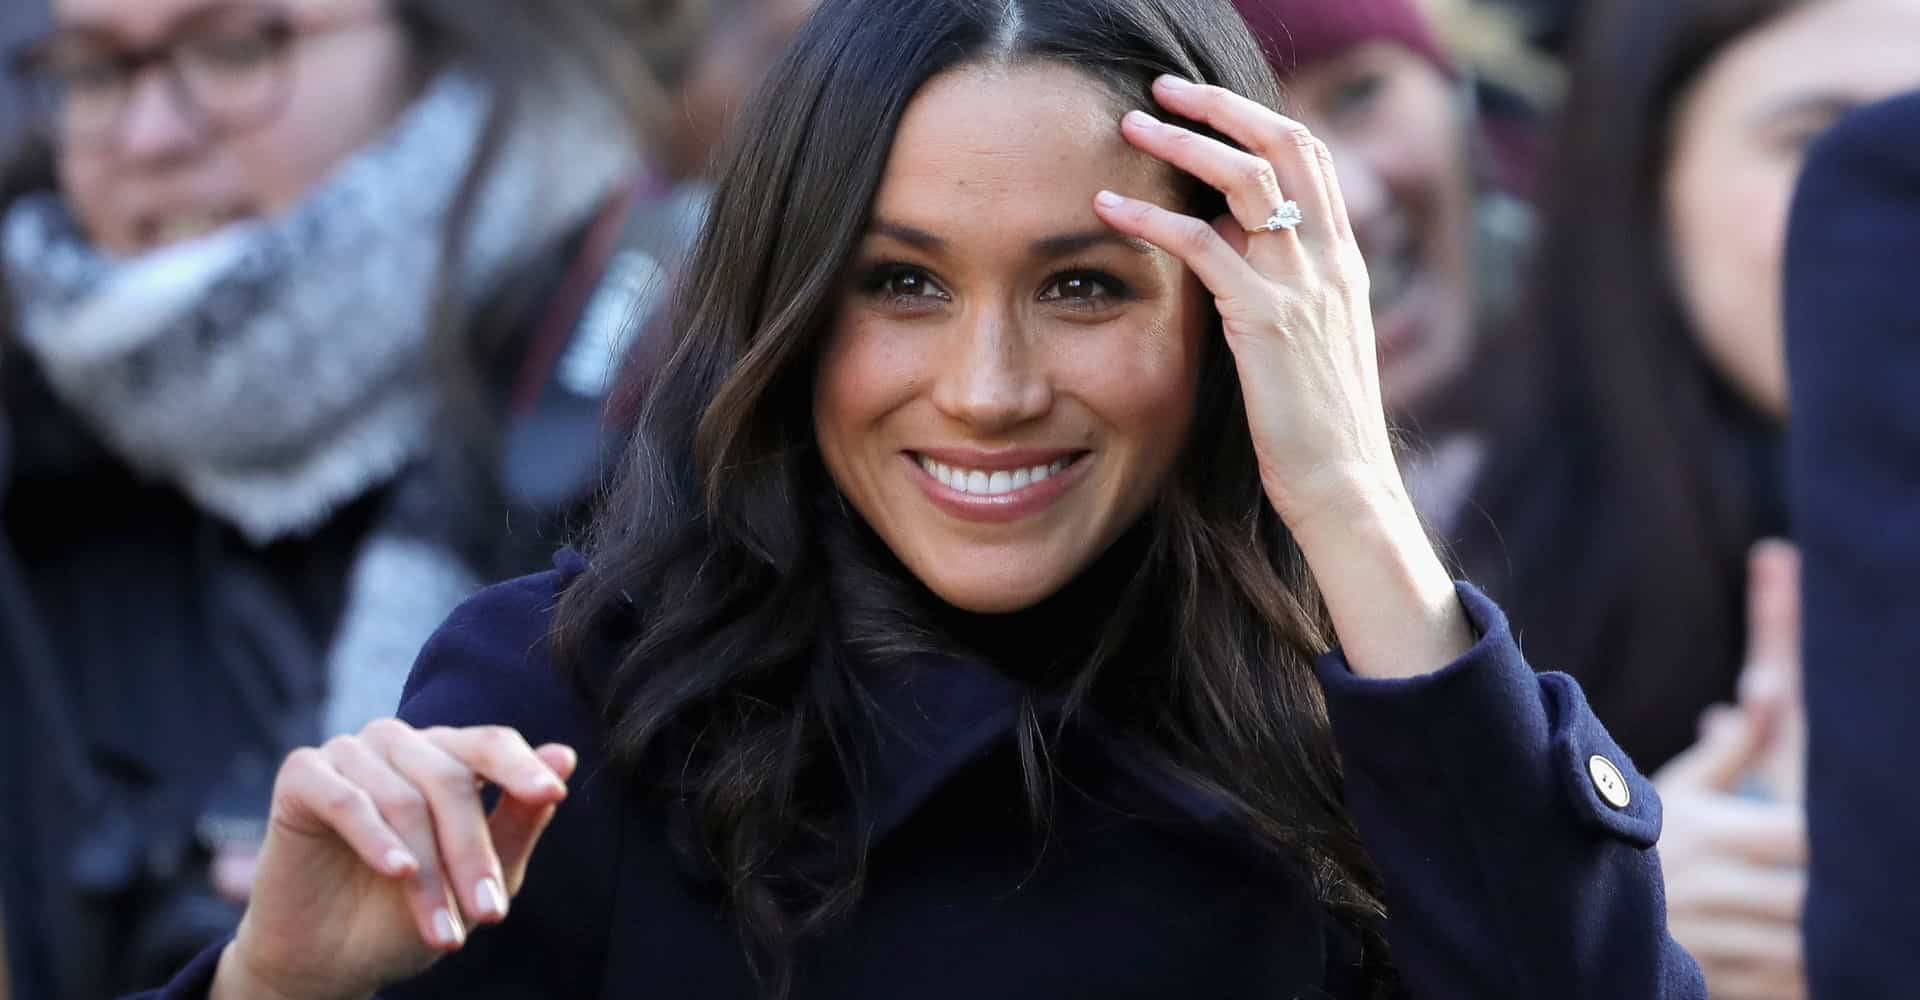 Why Meghan Markle's new hairstyle is sparking pregnancy rumors